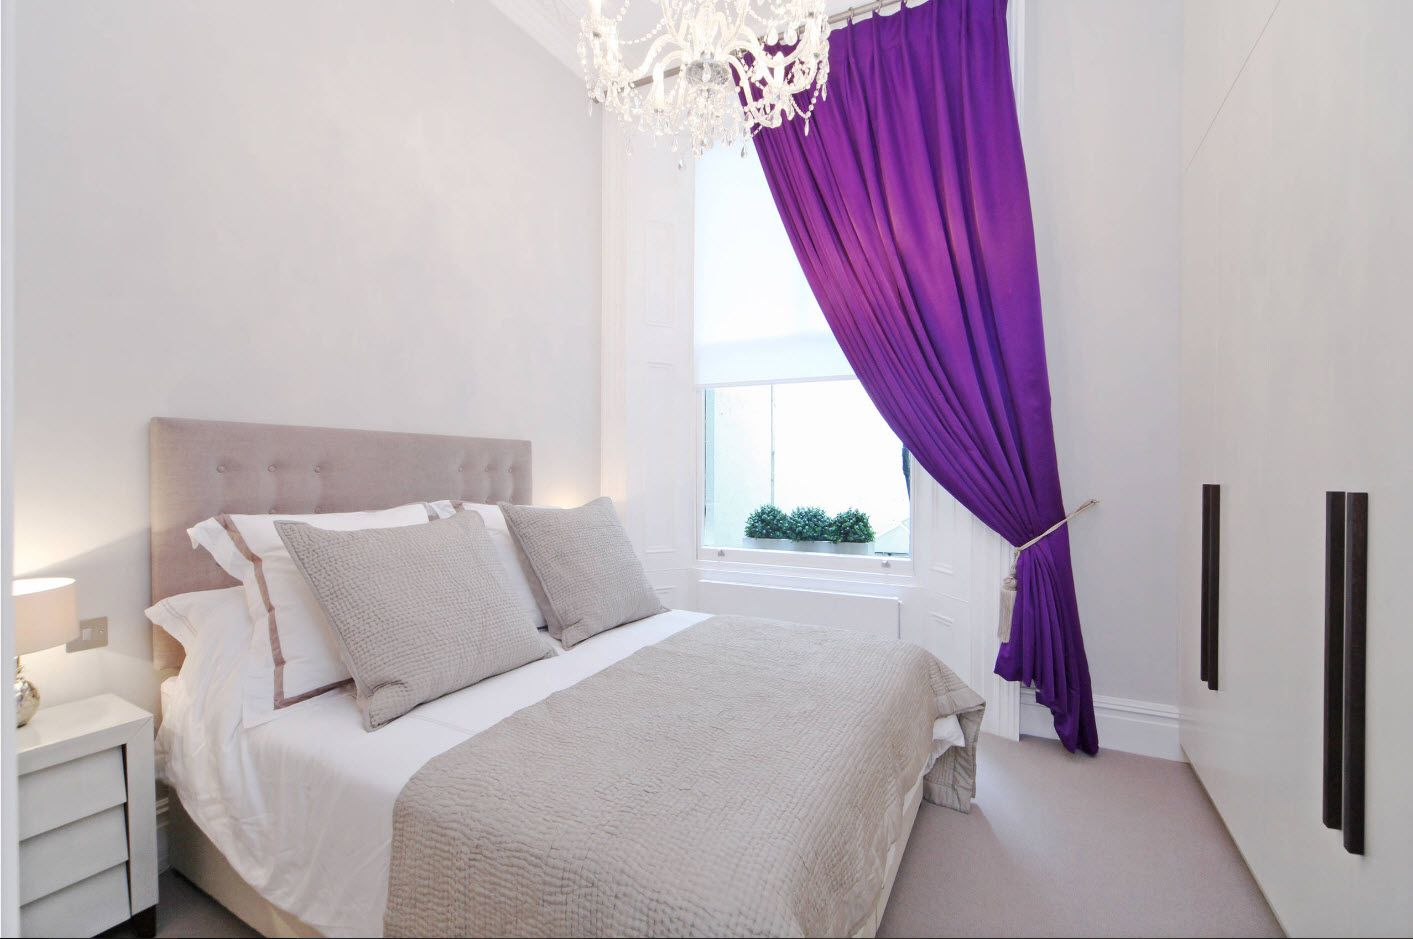 Purple half priscilla draperies in the ideally white bedroom with touch of gray